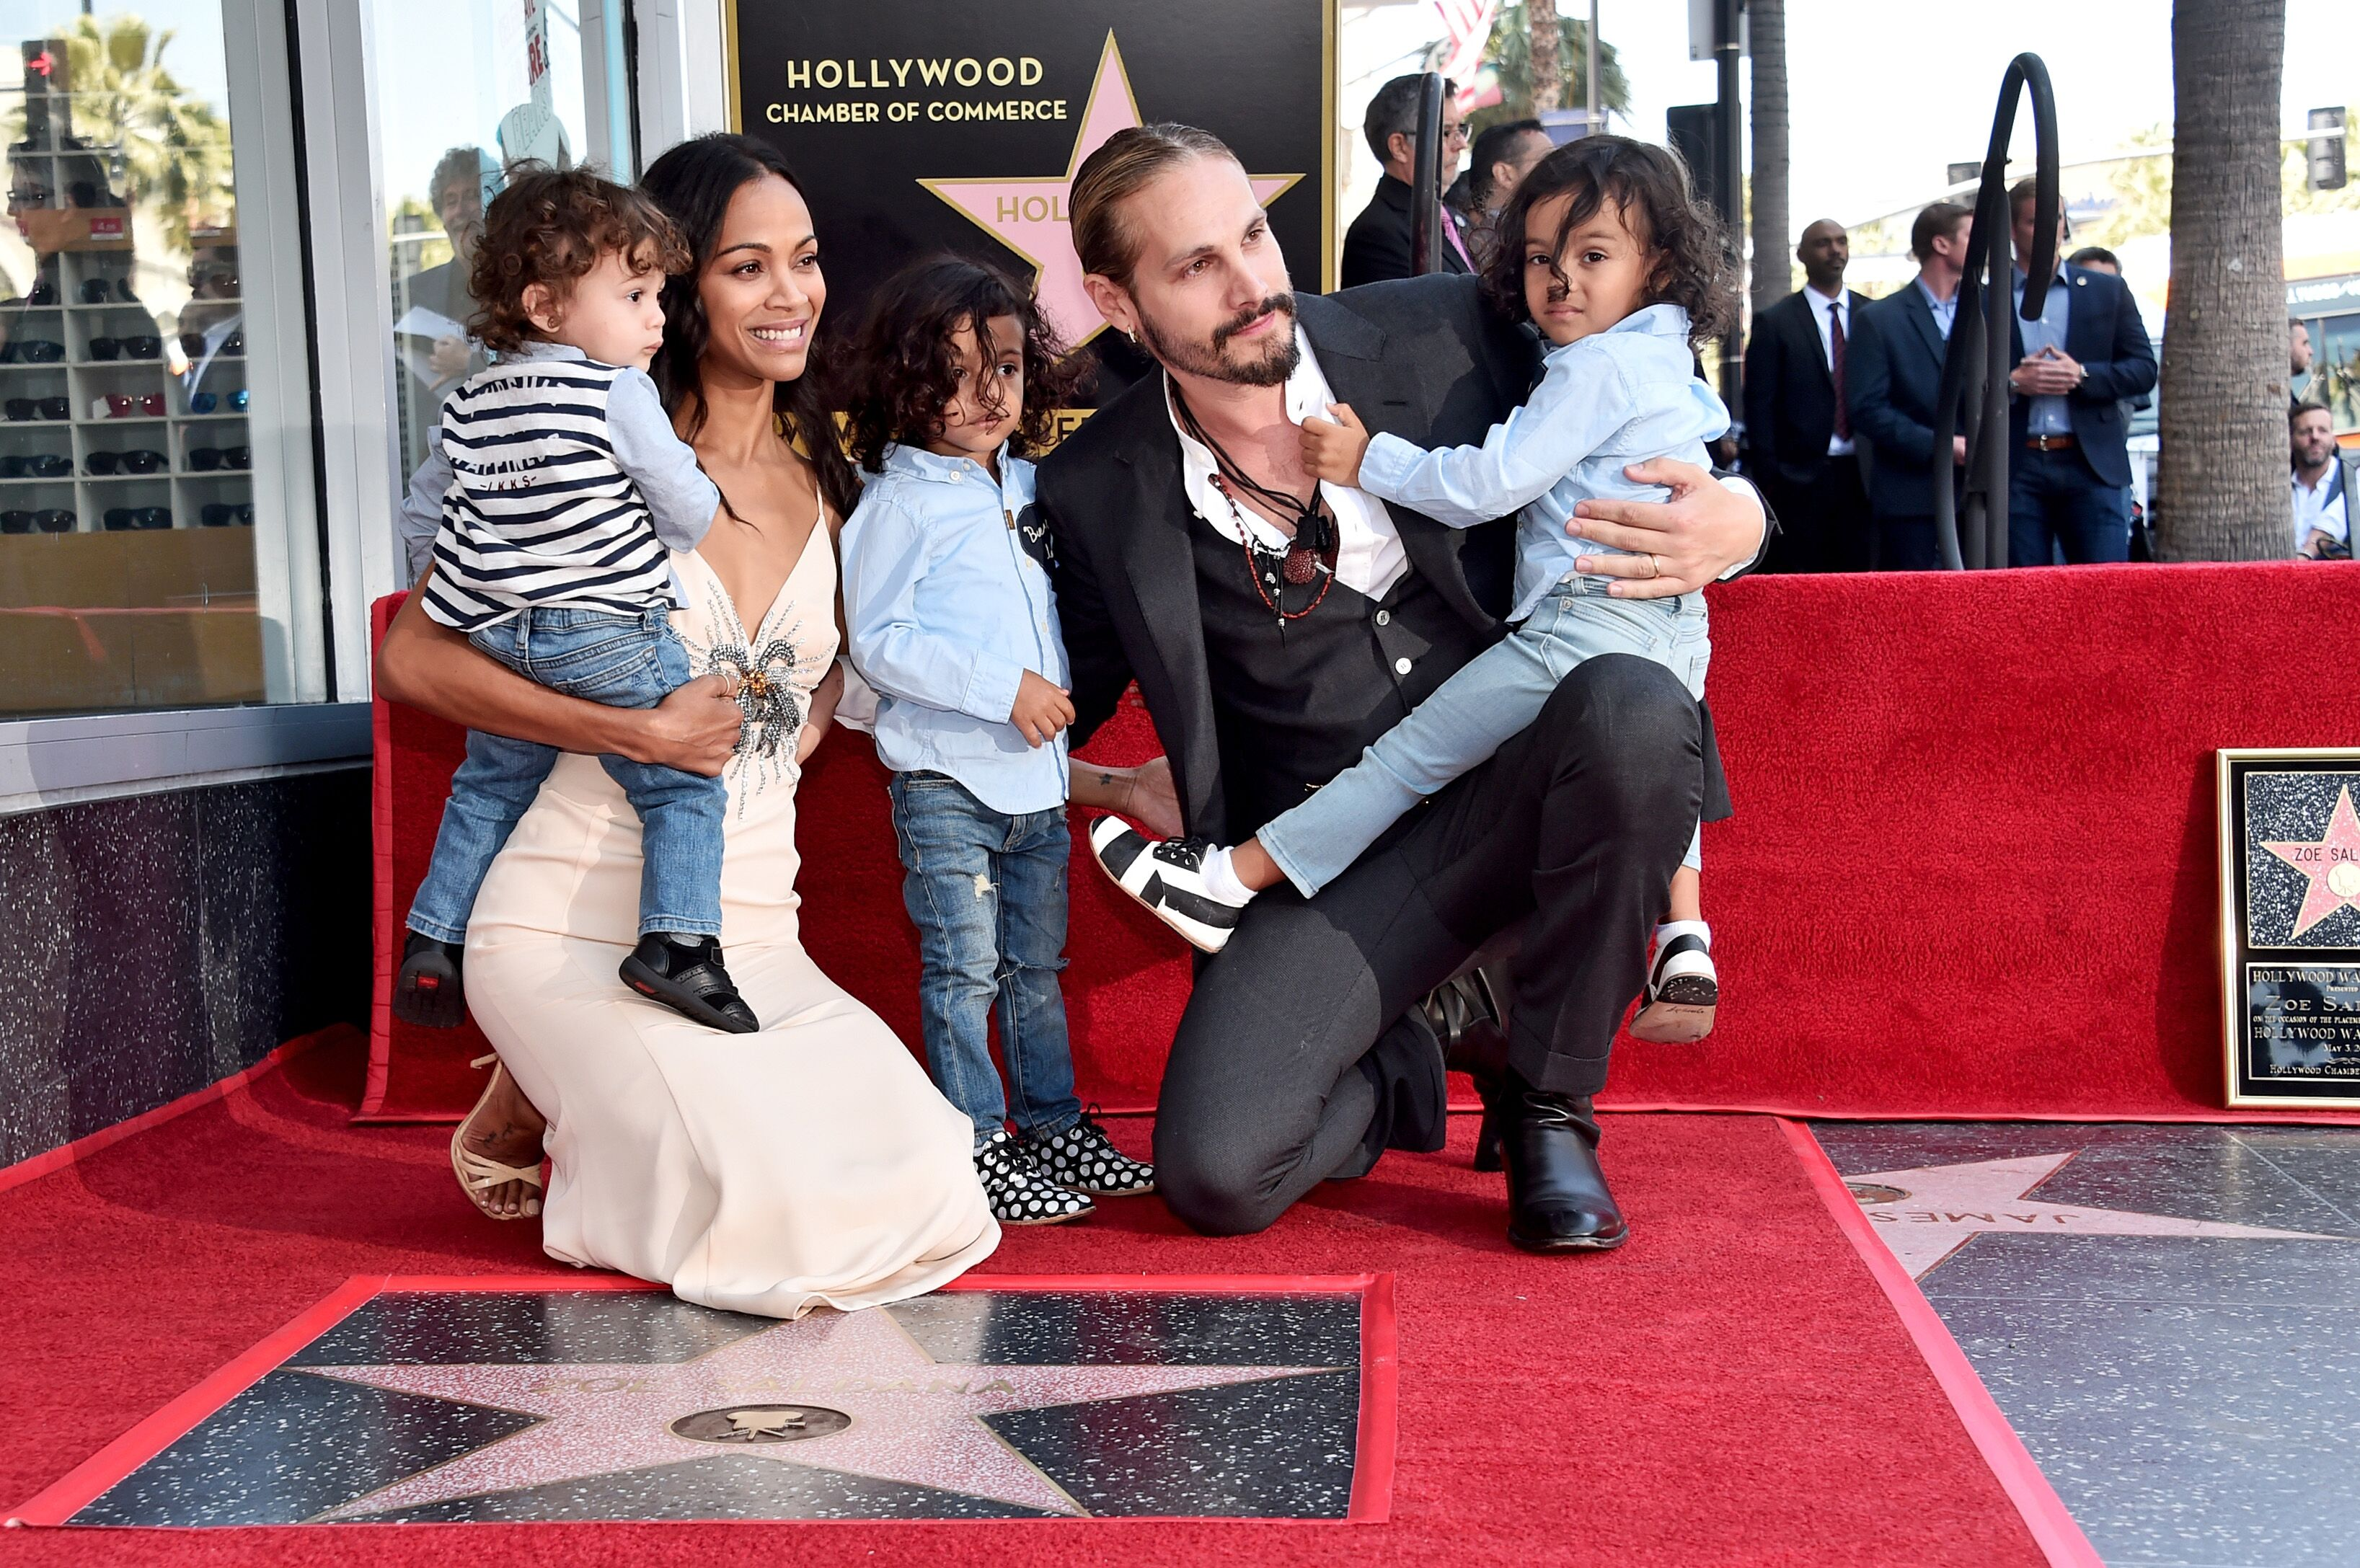 Honoree Zoe Saldana, Marco Perego, and children at the Zoe Saldana Walk Of Fame Star Ceremony in Hollywood, California | Photo: Getty Images